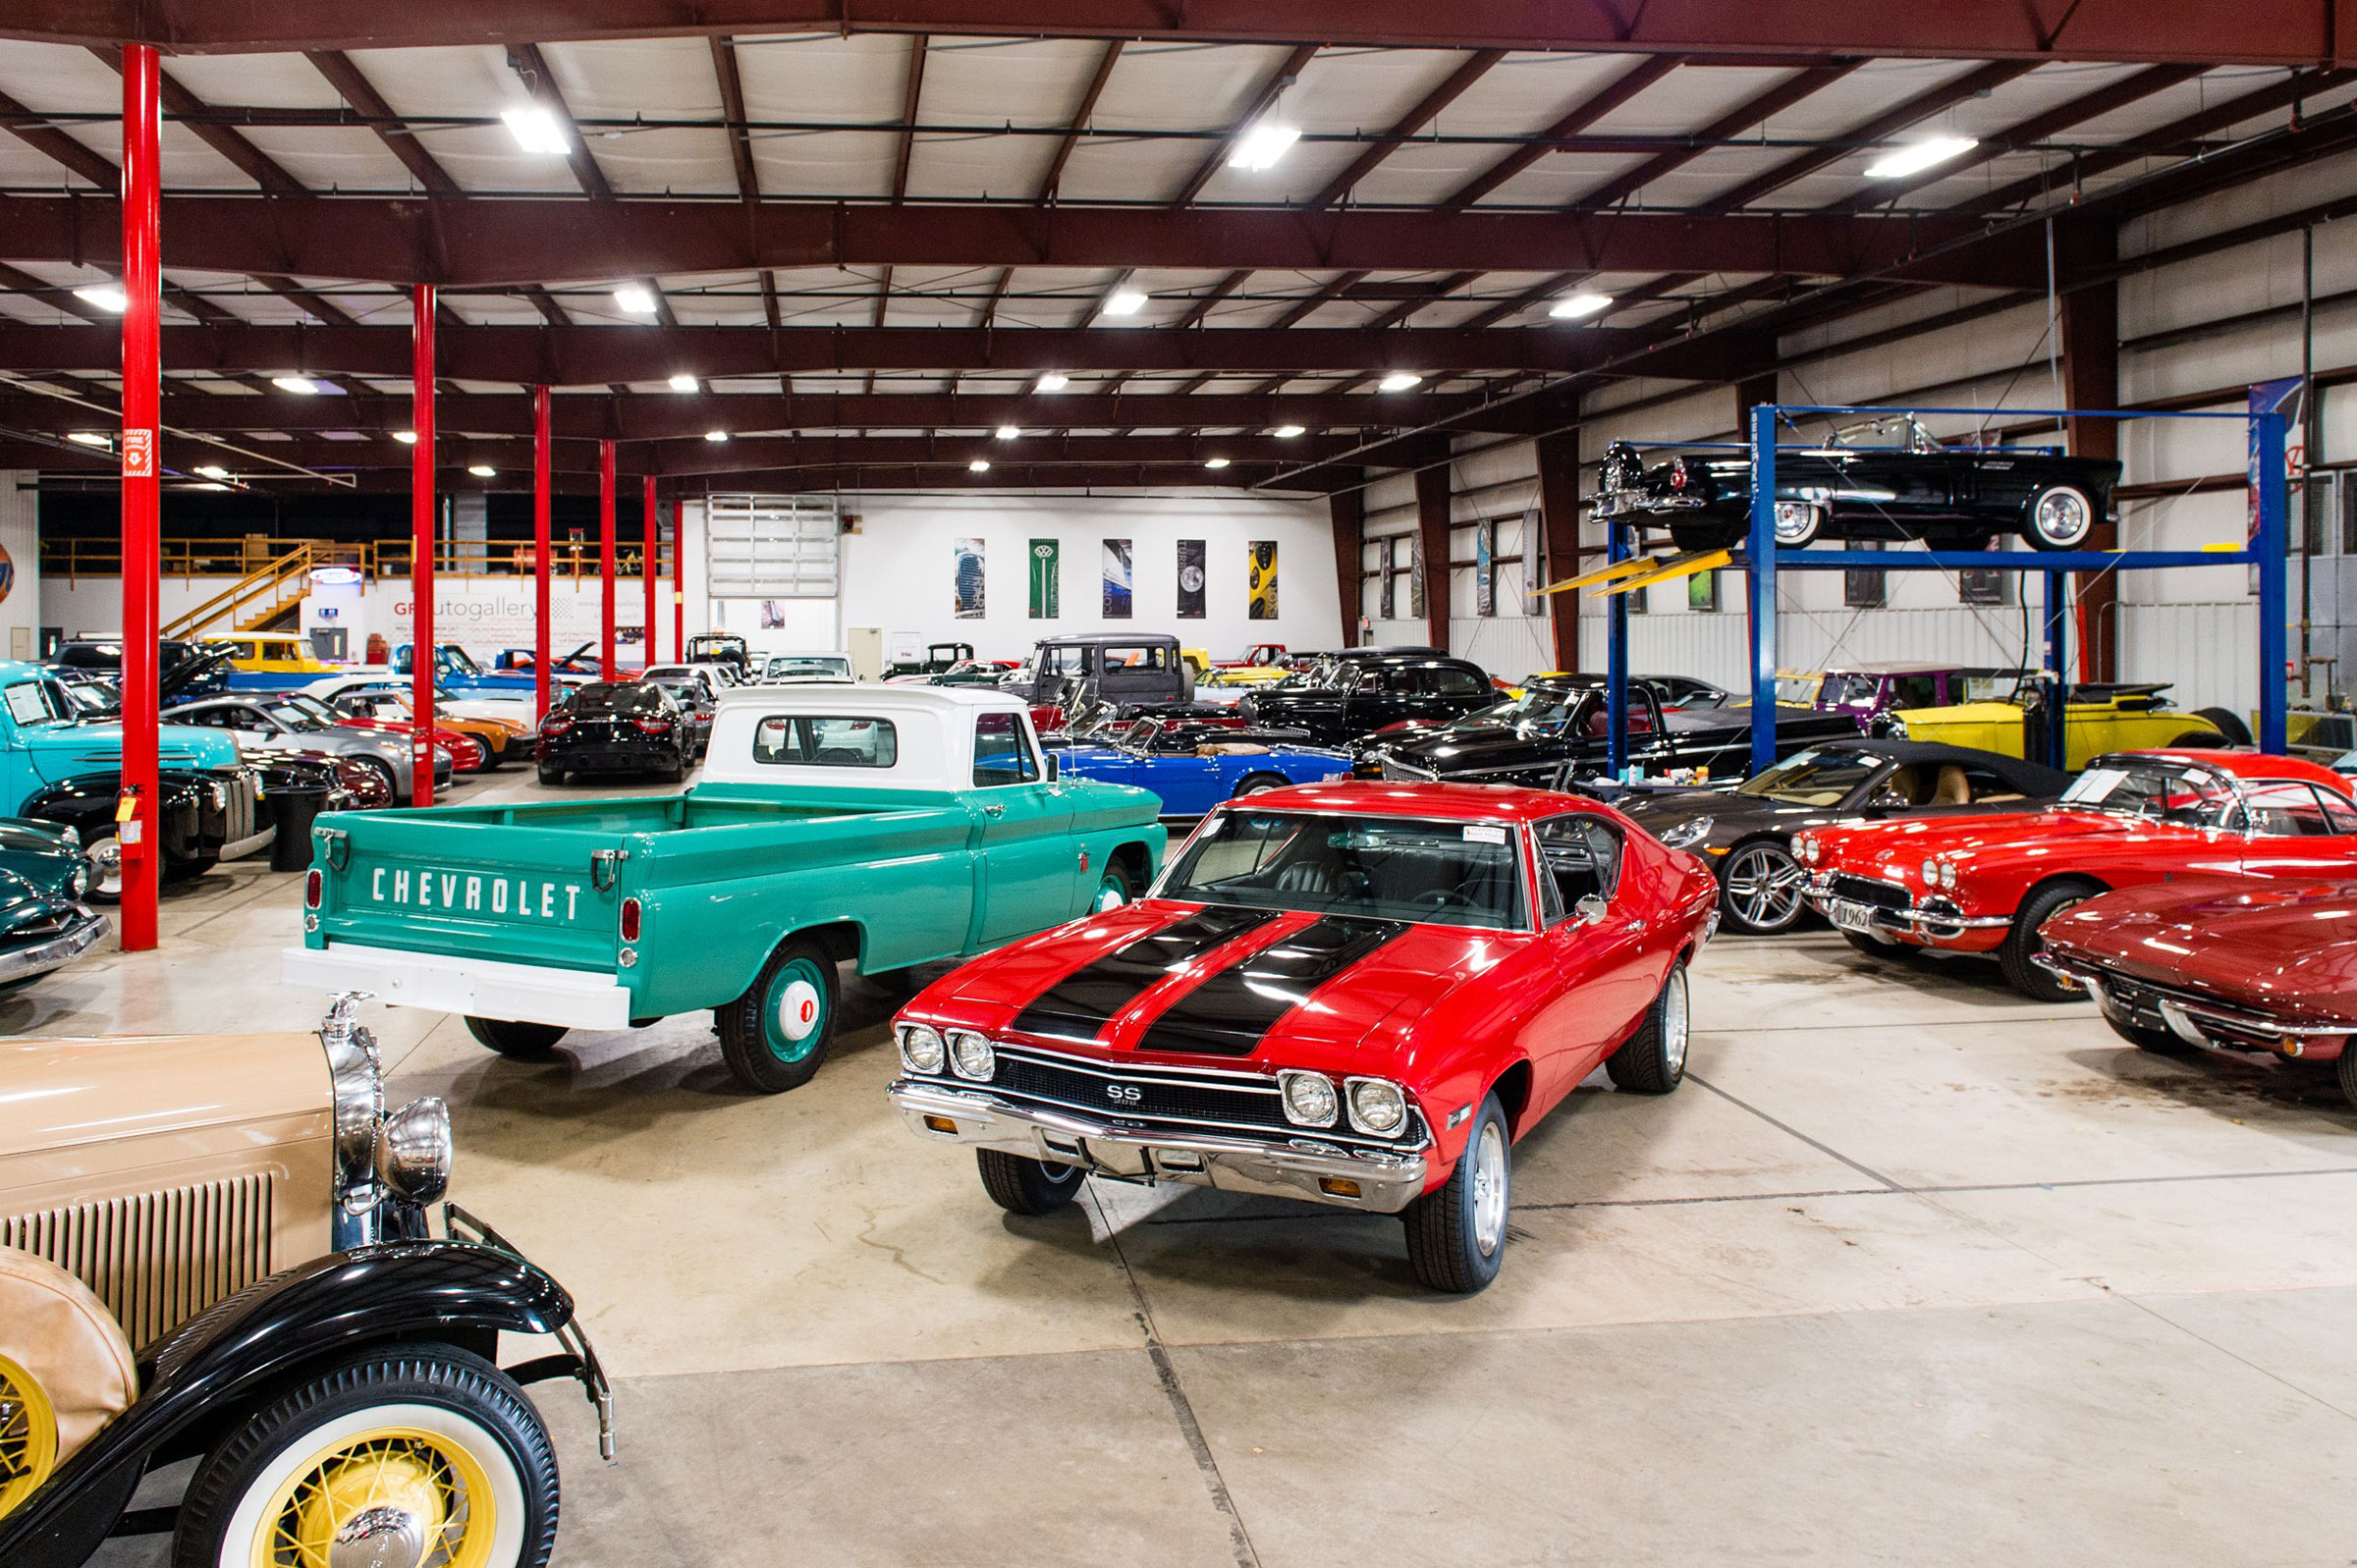 GR Auto Gallery has a public showroom filled with classics.